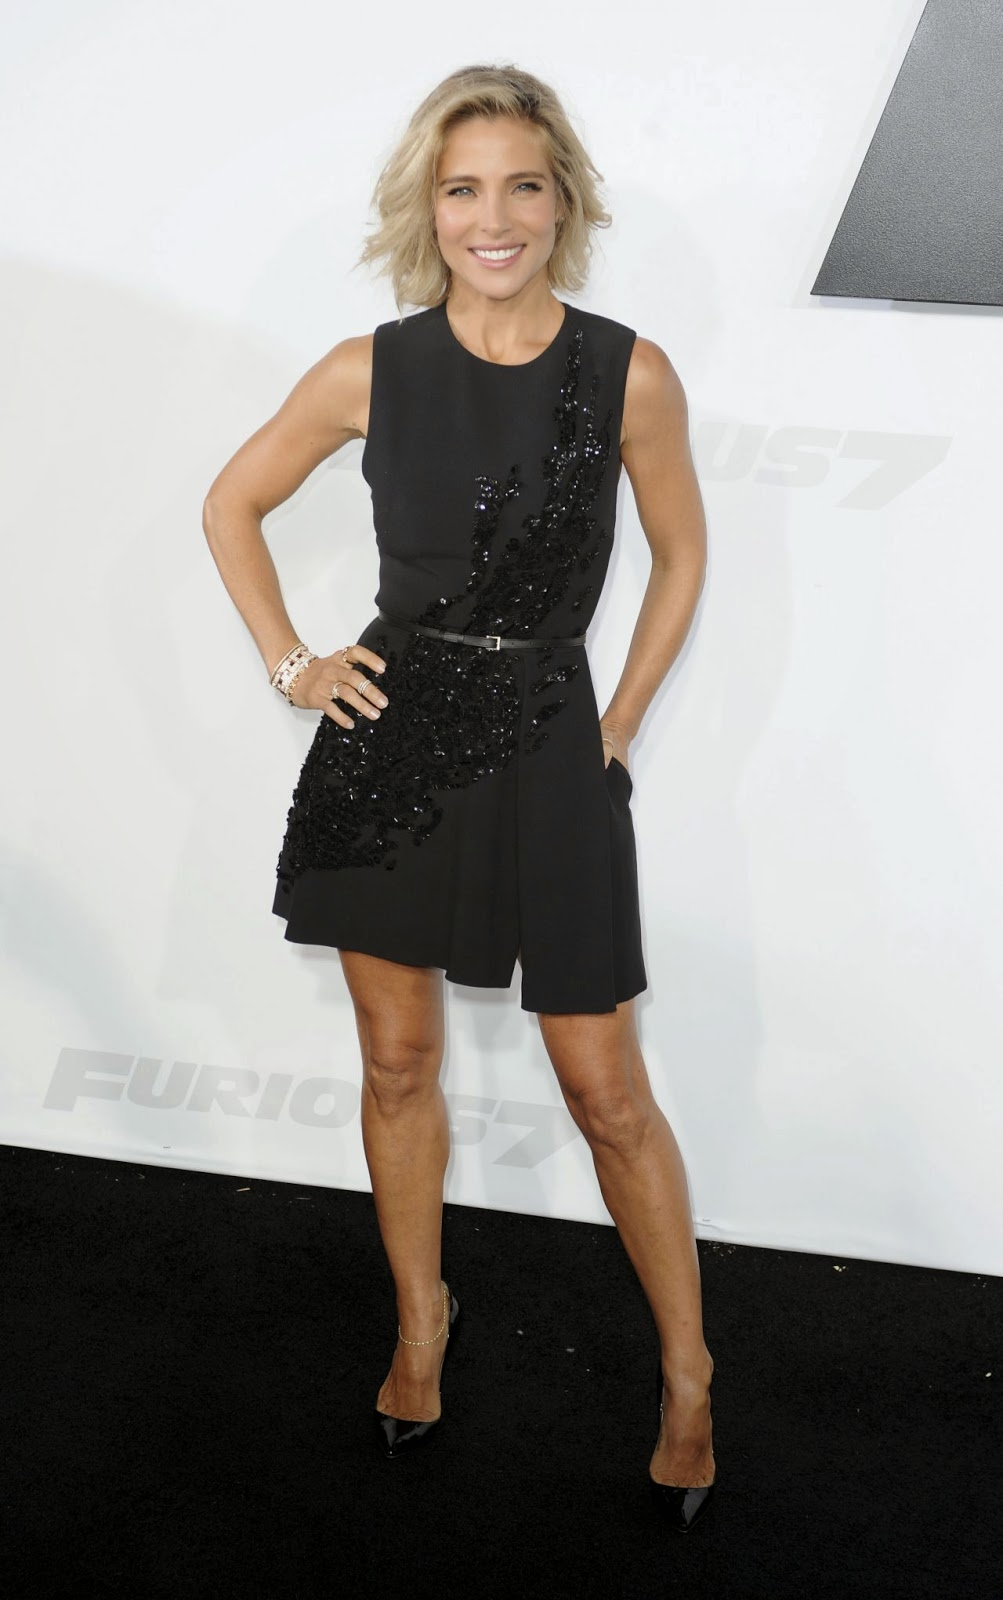 Elsa Pataky wears Elie Saab to the 'Furious 7' premiere in LA